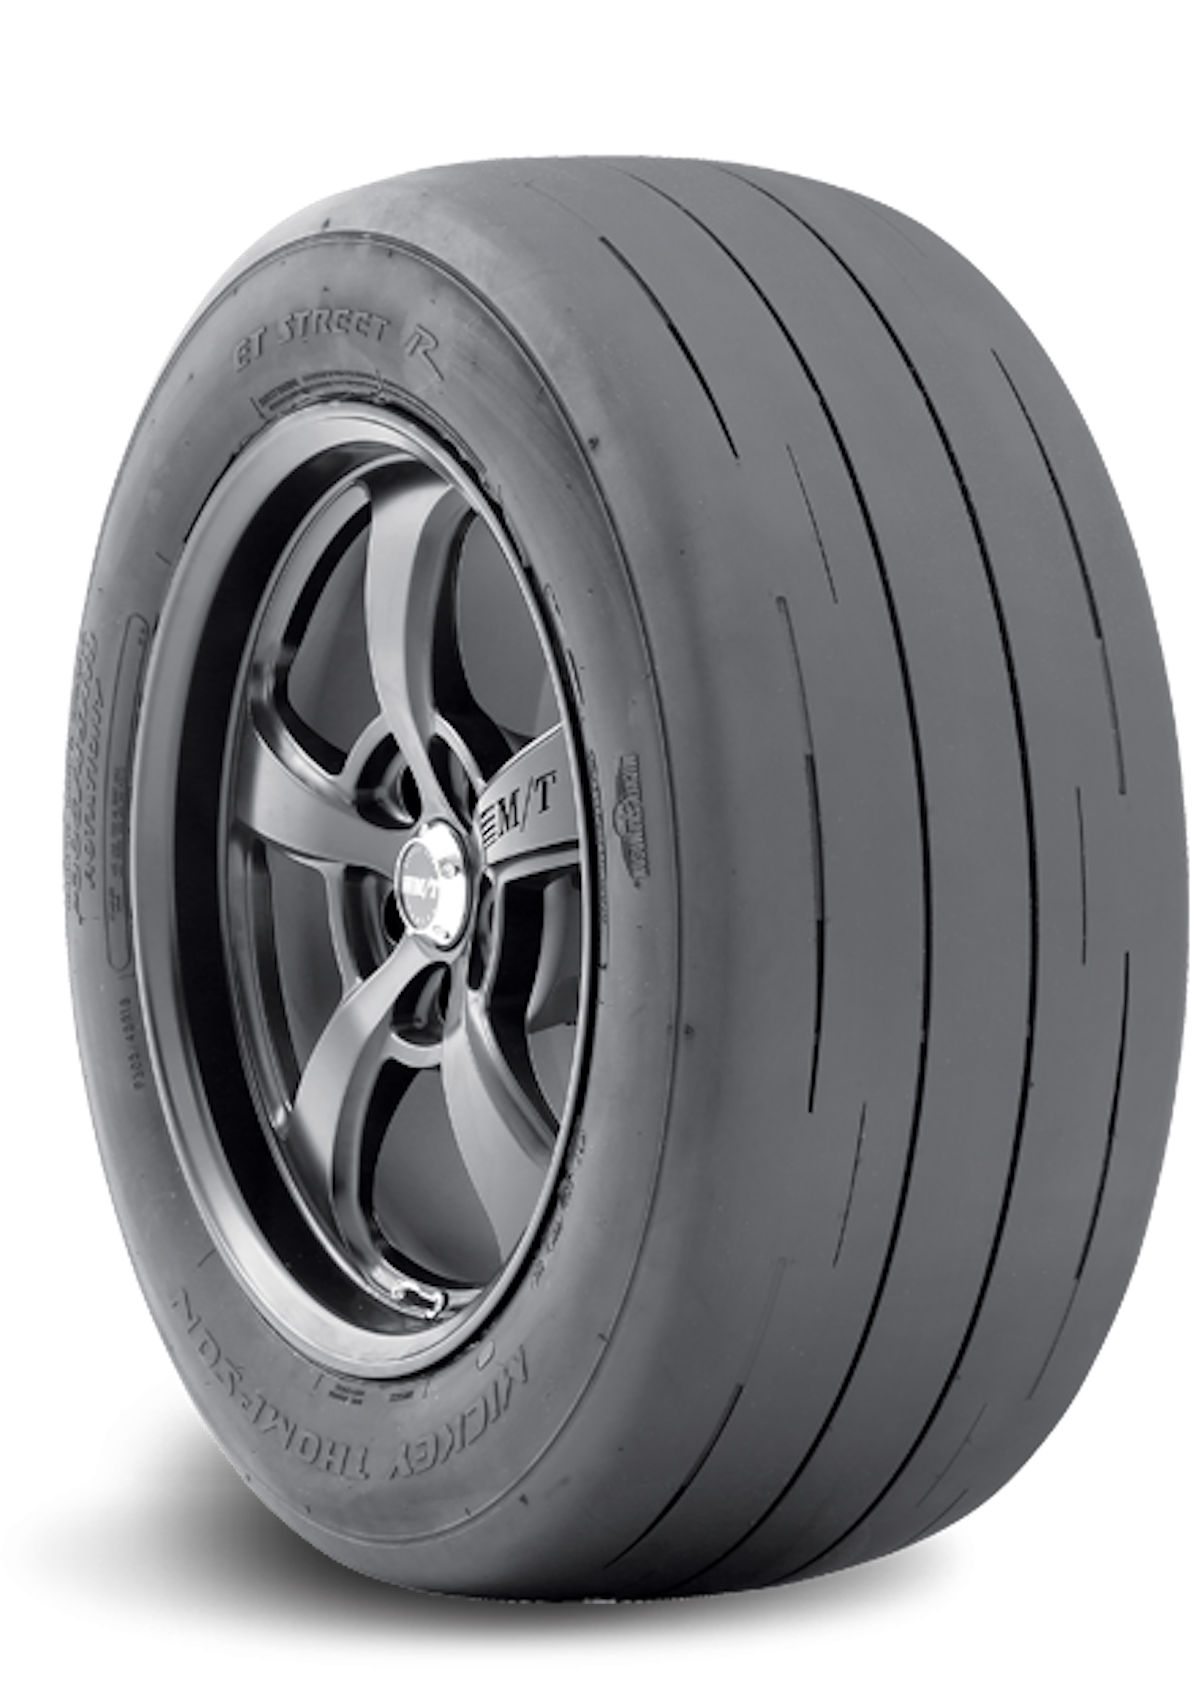 Mickey thompson tire logo png. Expand et street r